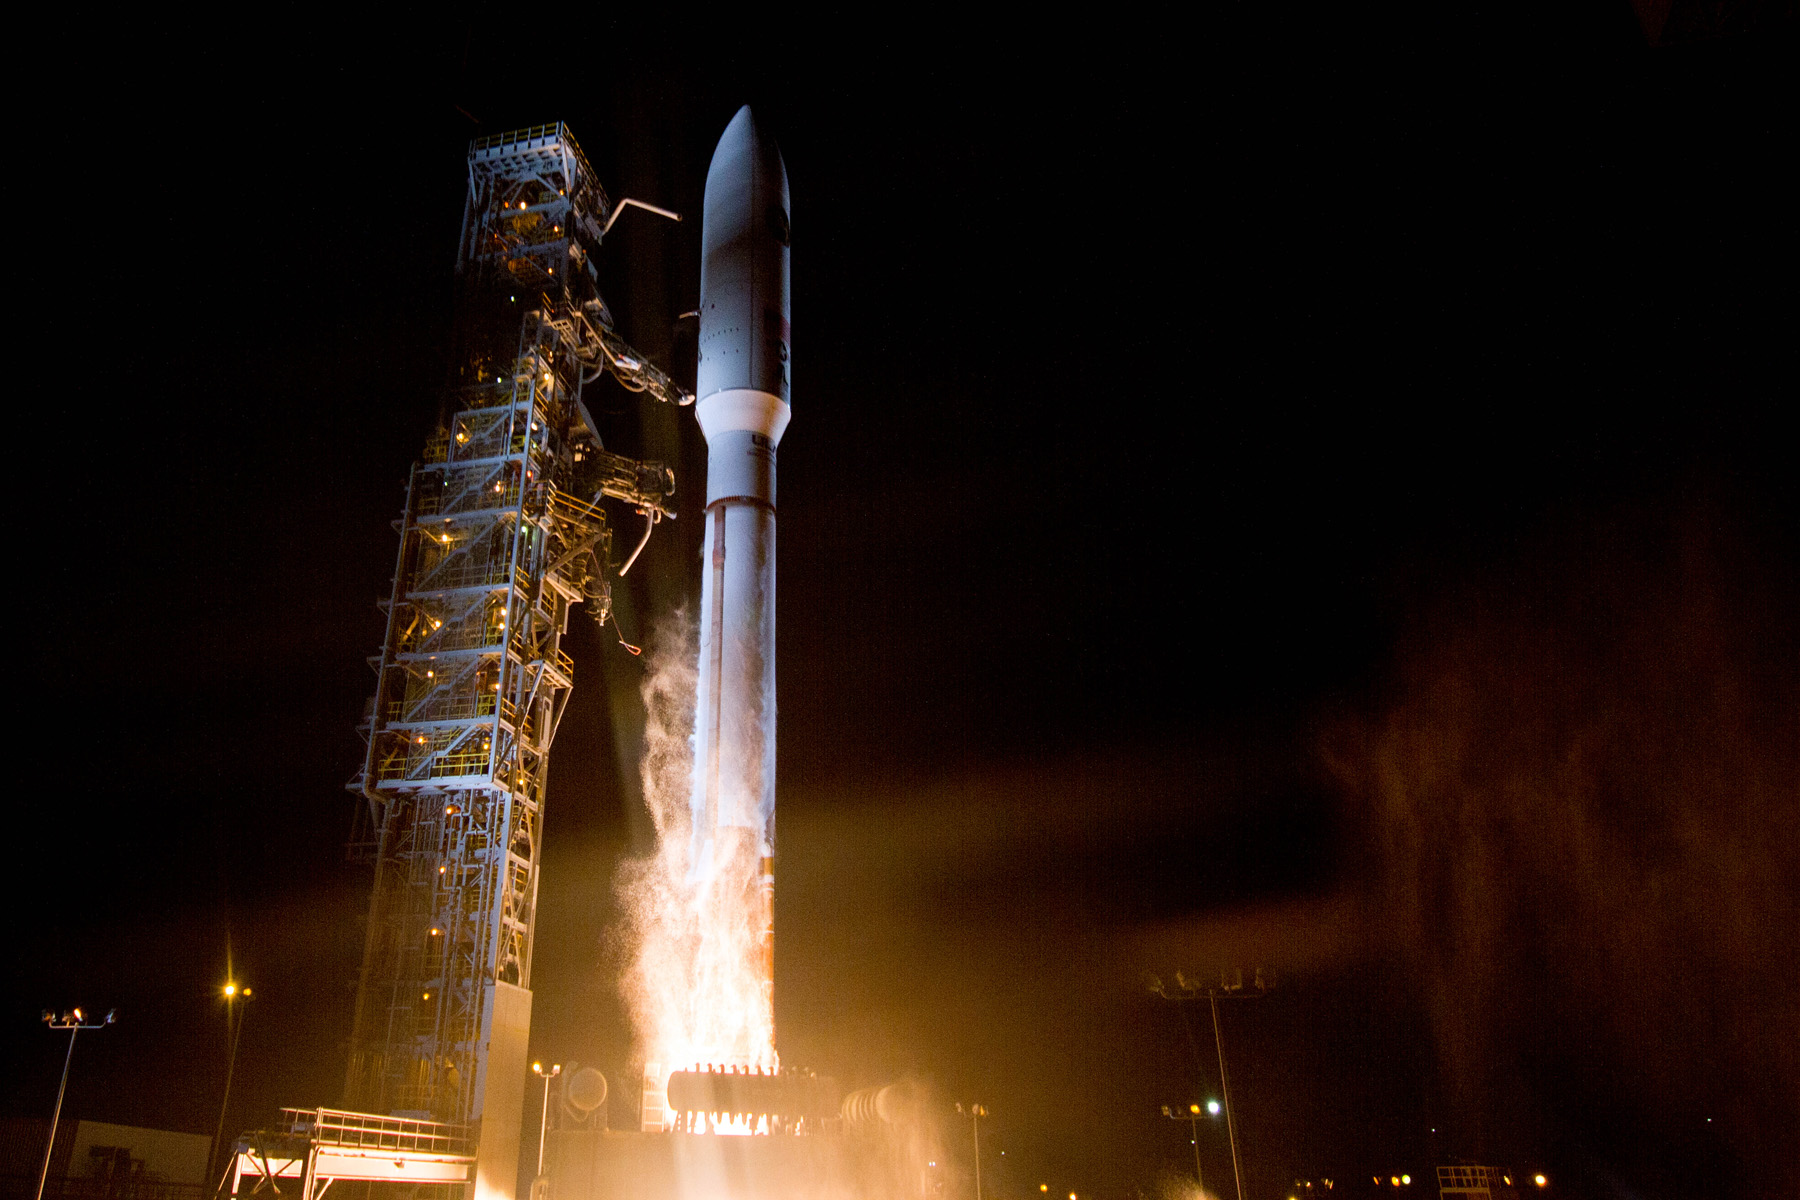 A United Launch Alliance Atlas V 502 rocket lifts off from Vandenberg Air Force Base's Space Launch Complex 3 in California with a classified payload for the National Reconnaissance Office. Launch occurred at 11:14 p.m. PST. Photo Credit: ULA